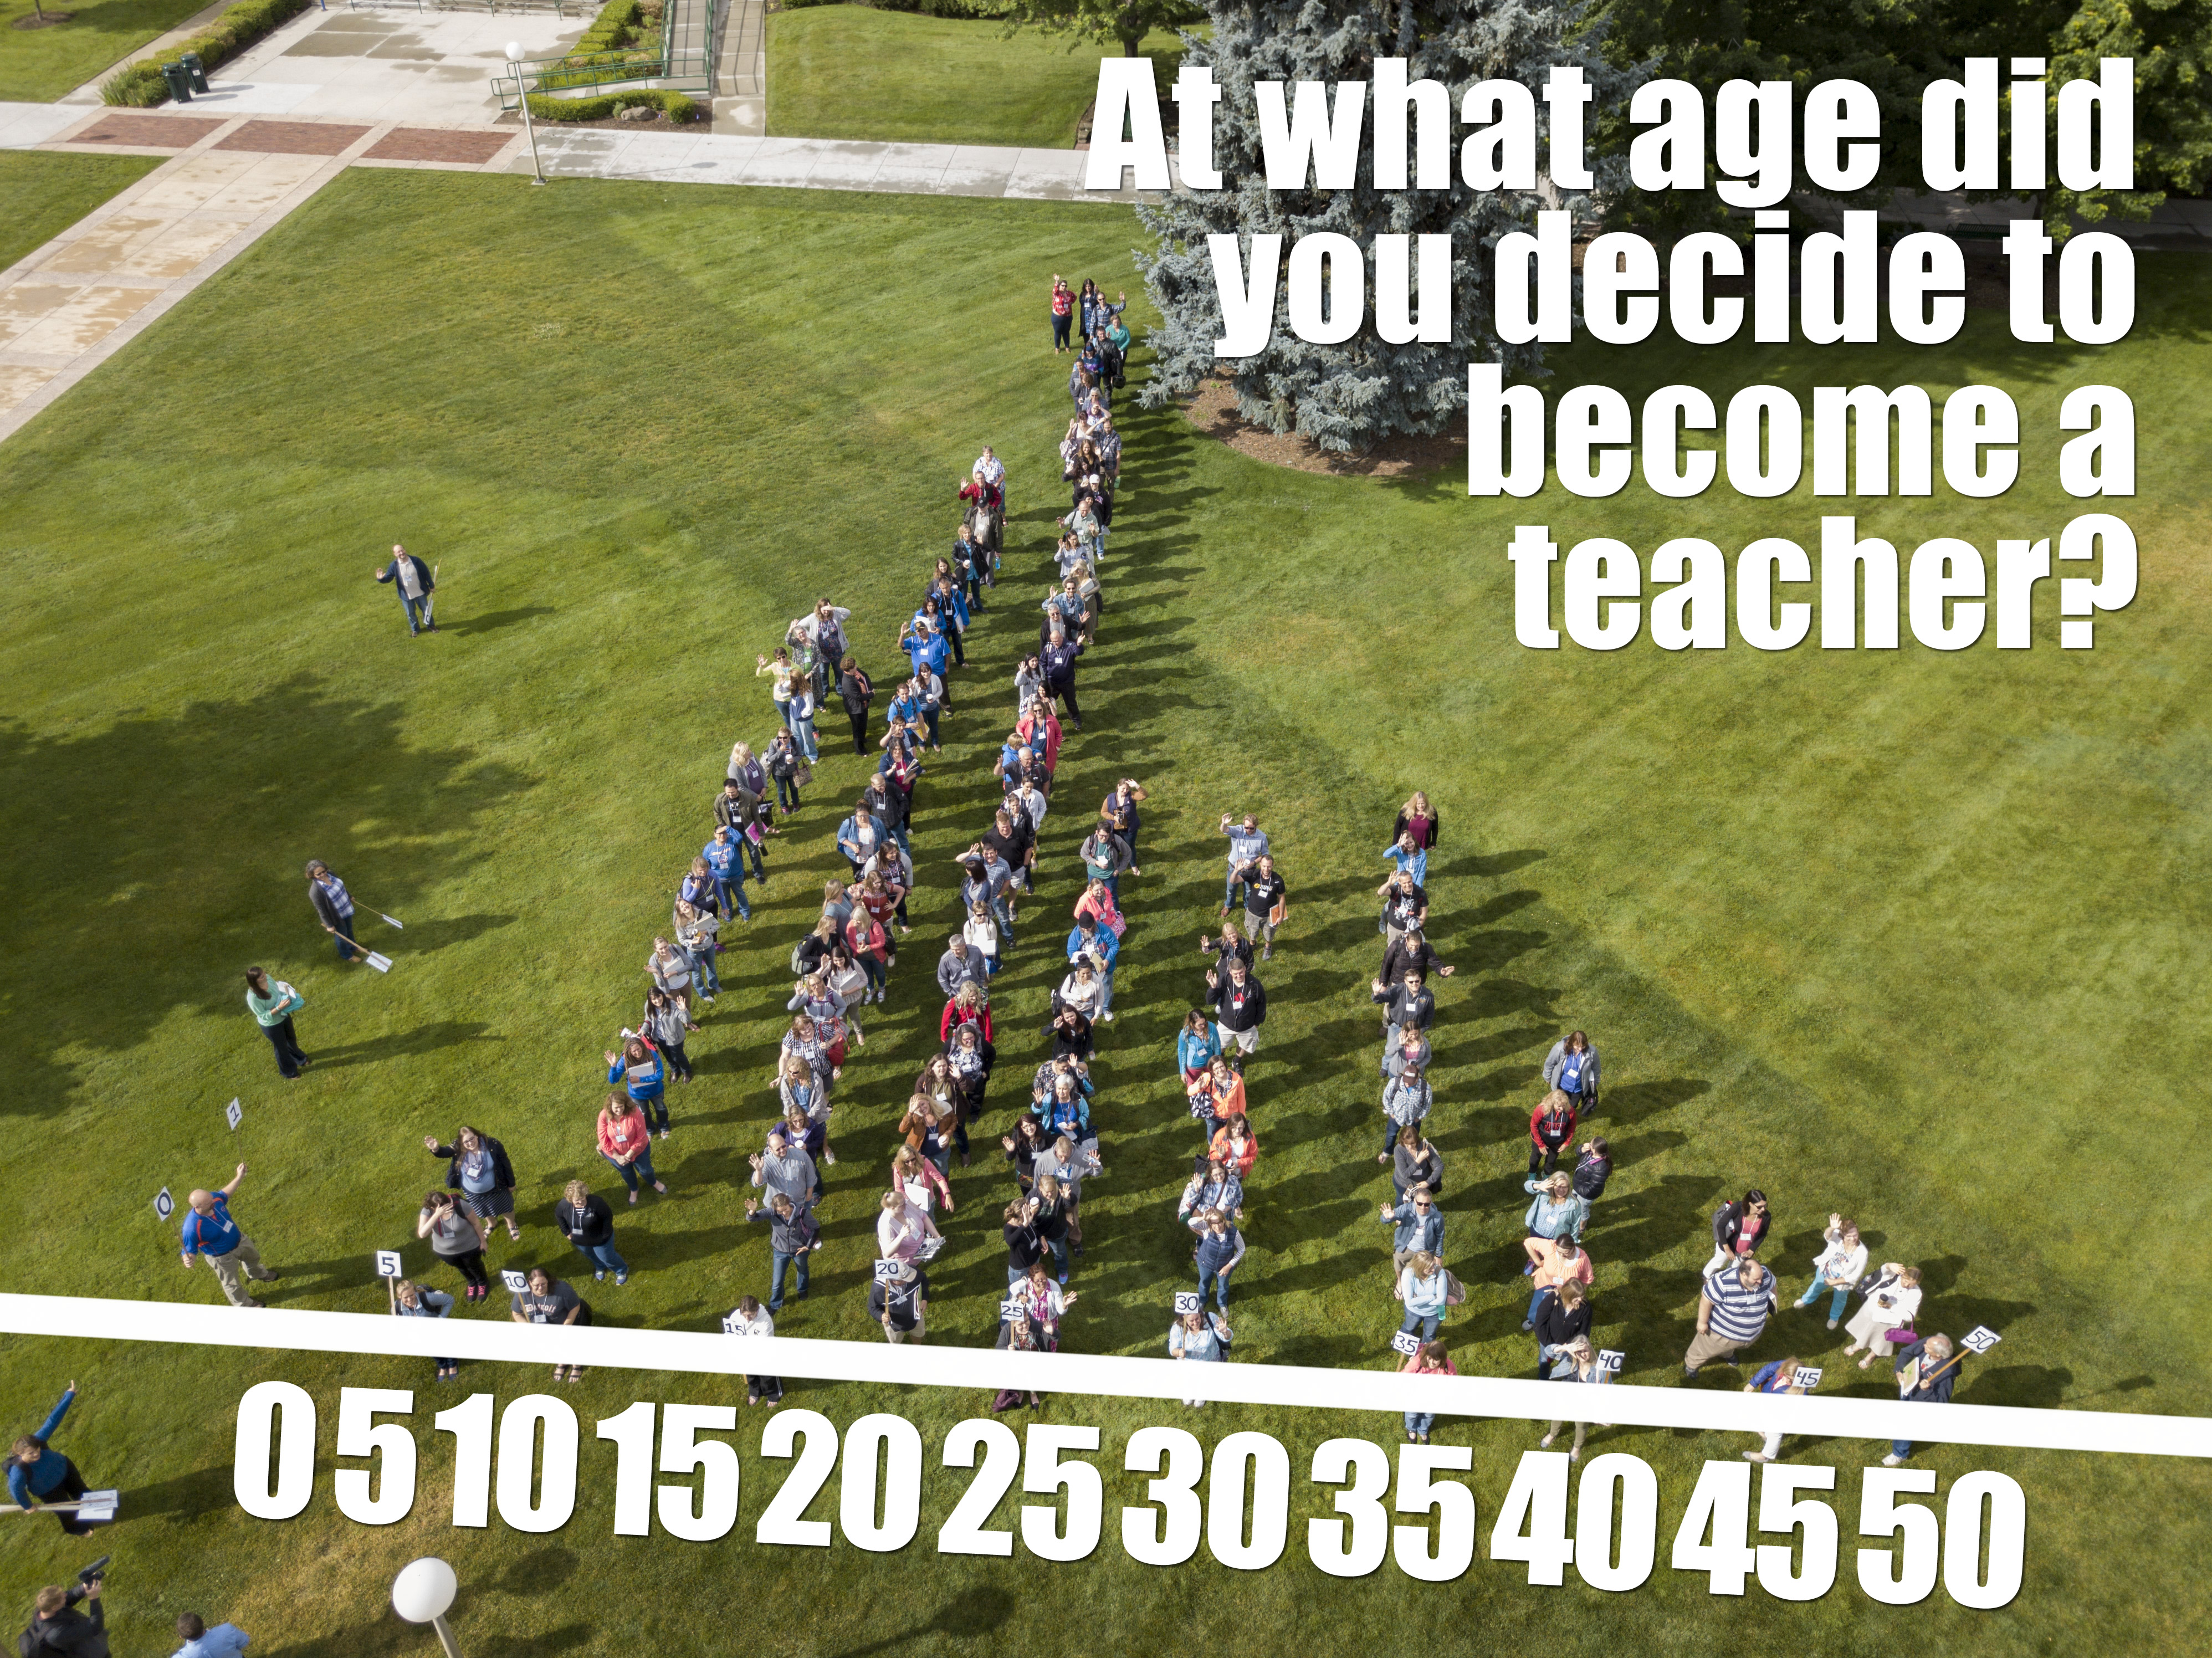 "Image of teachers lined up with text ""At what age did you decide to become a teacher?"" at top and an age range 0-50 at the bottom, with teachers in corresponding lines."